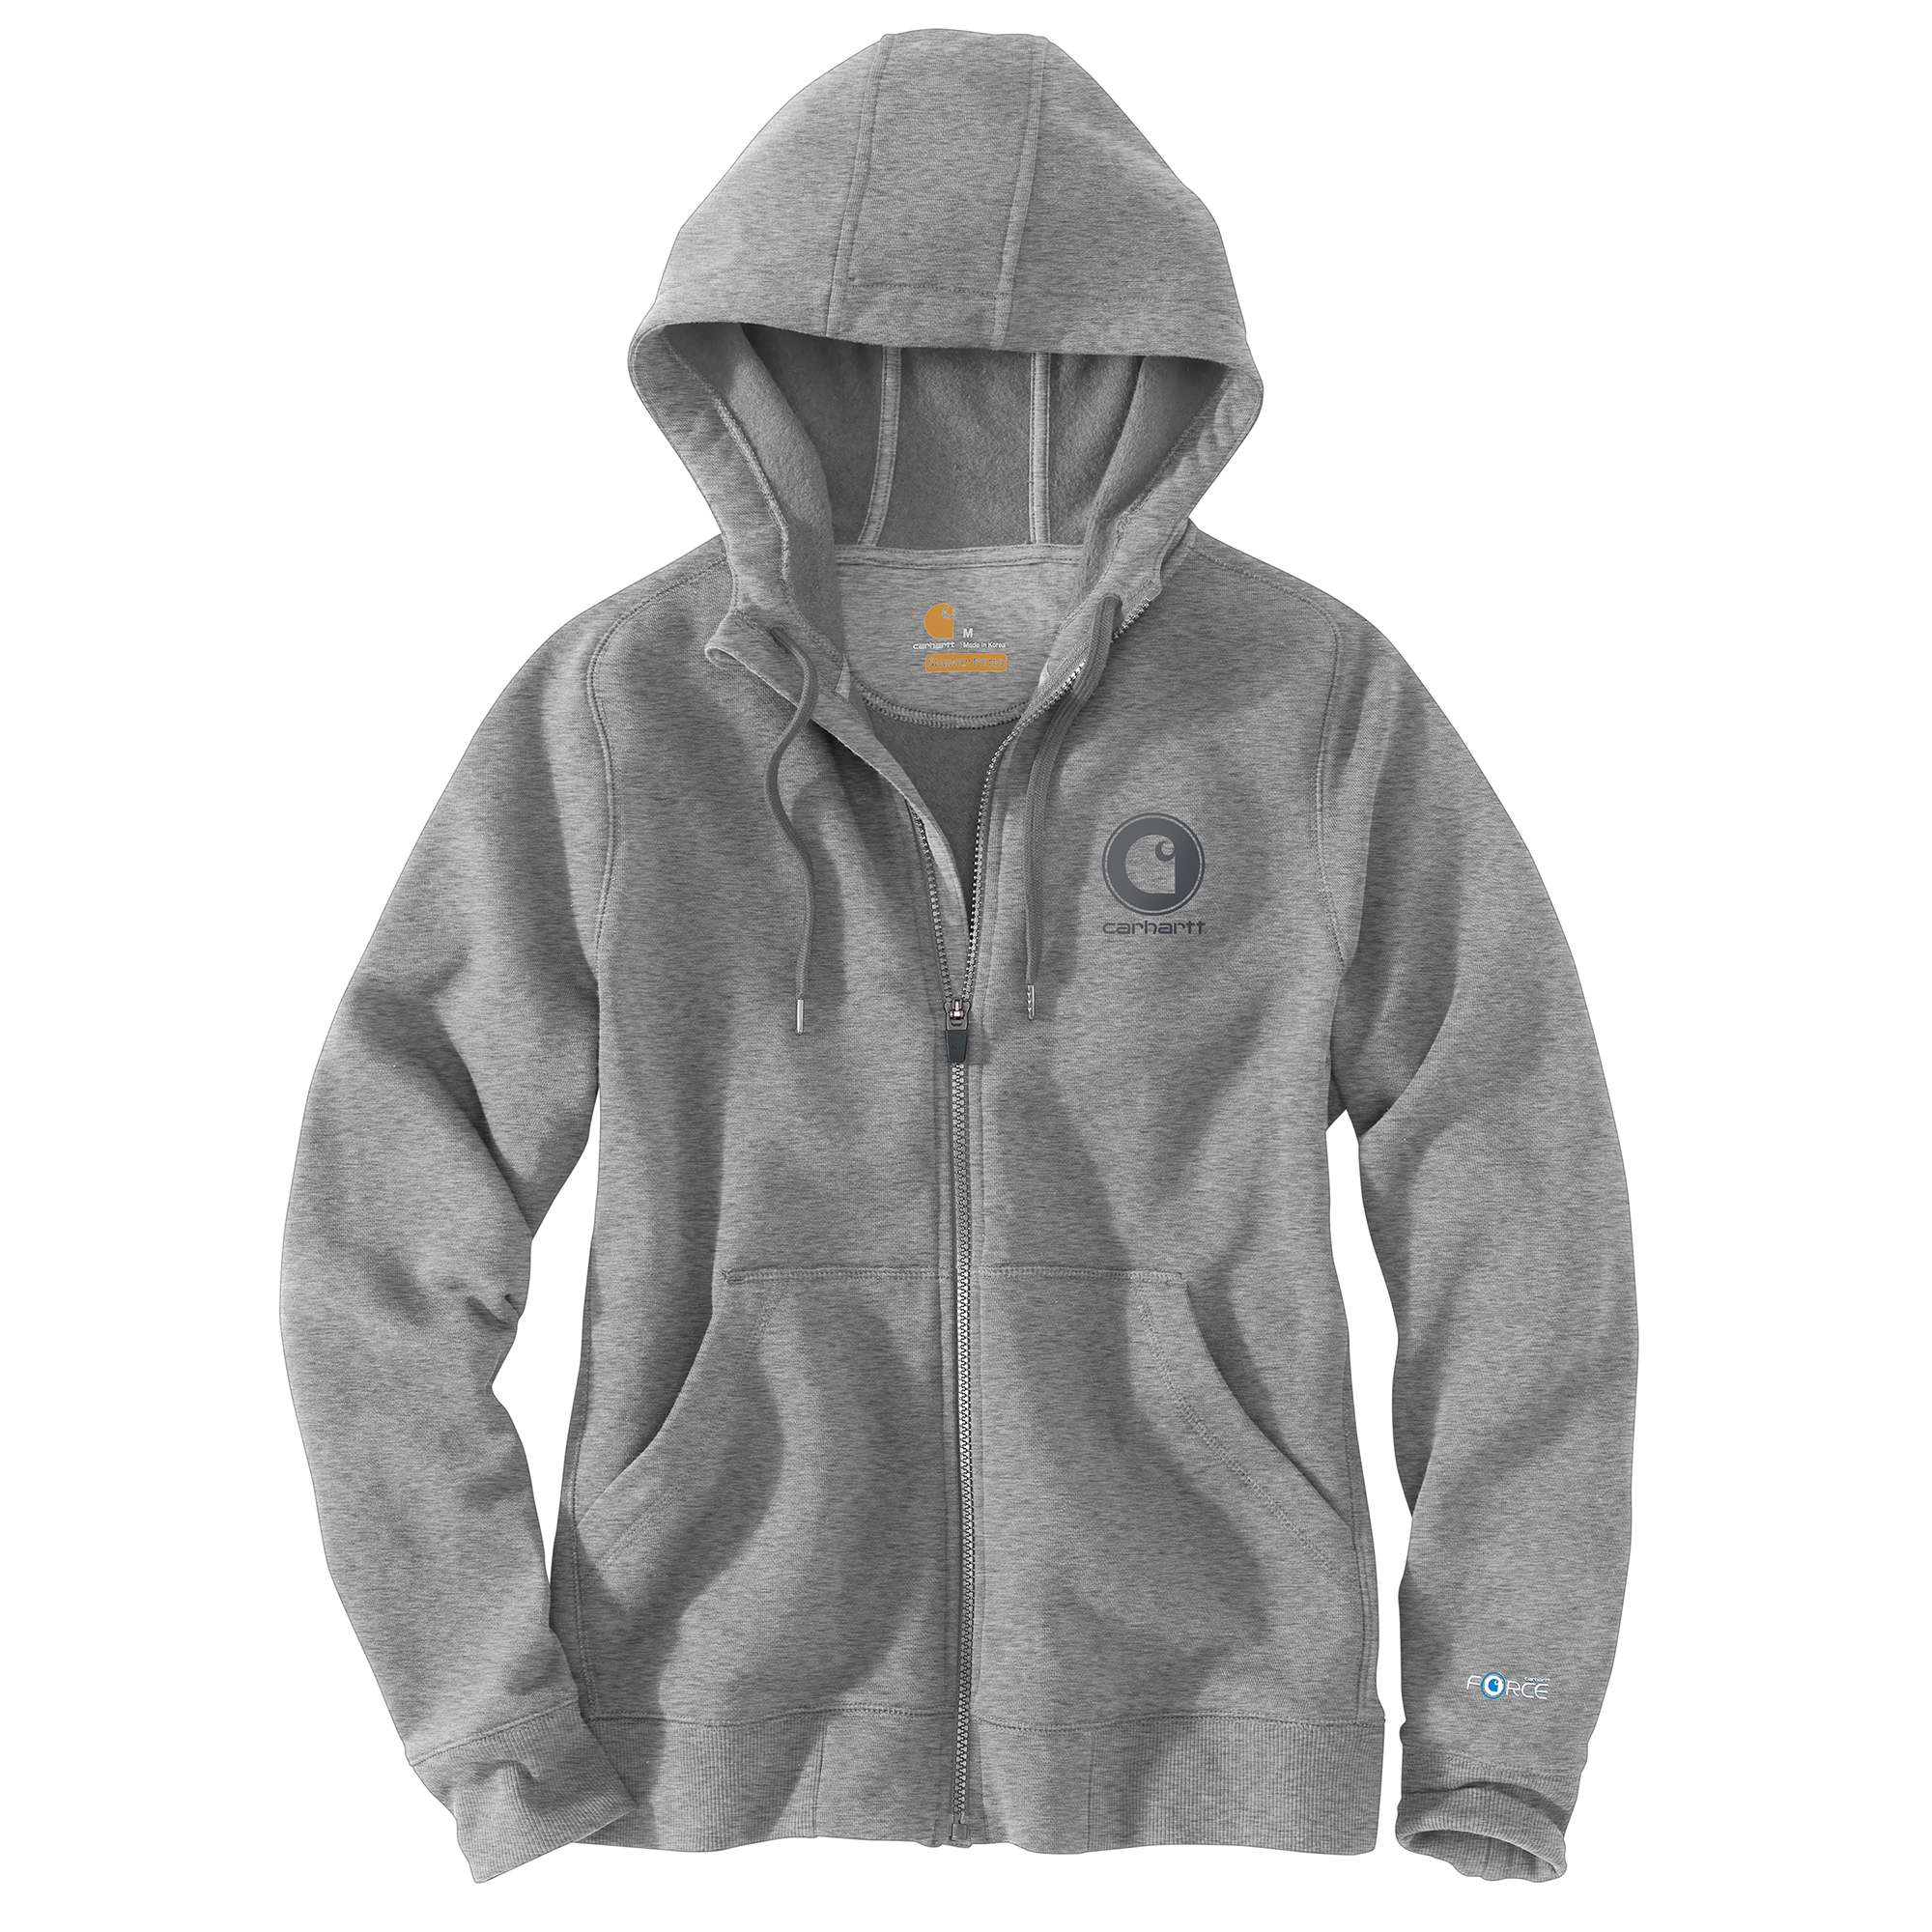 WOMEN'S FORCE DELMONT GRAPHIC ZIP-FRONT HOODED SWEATSHIRT